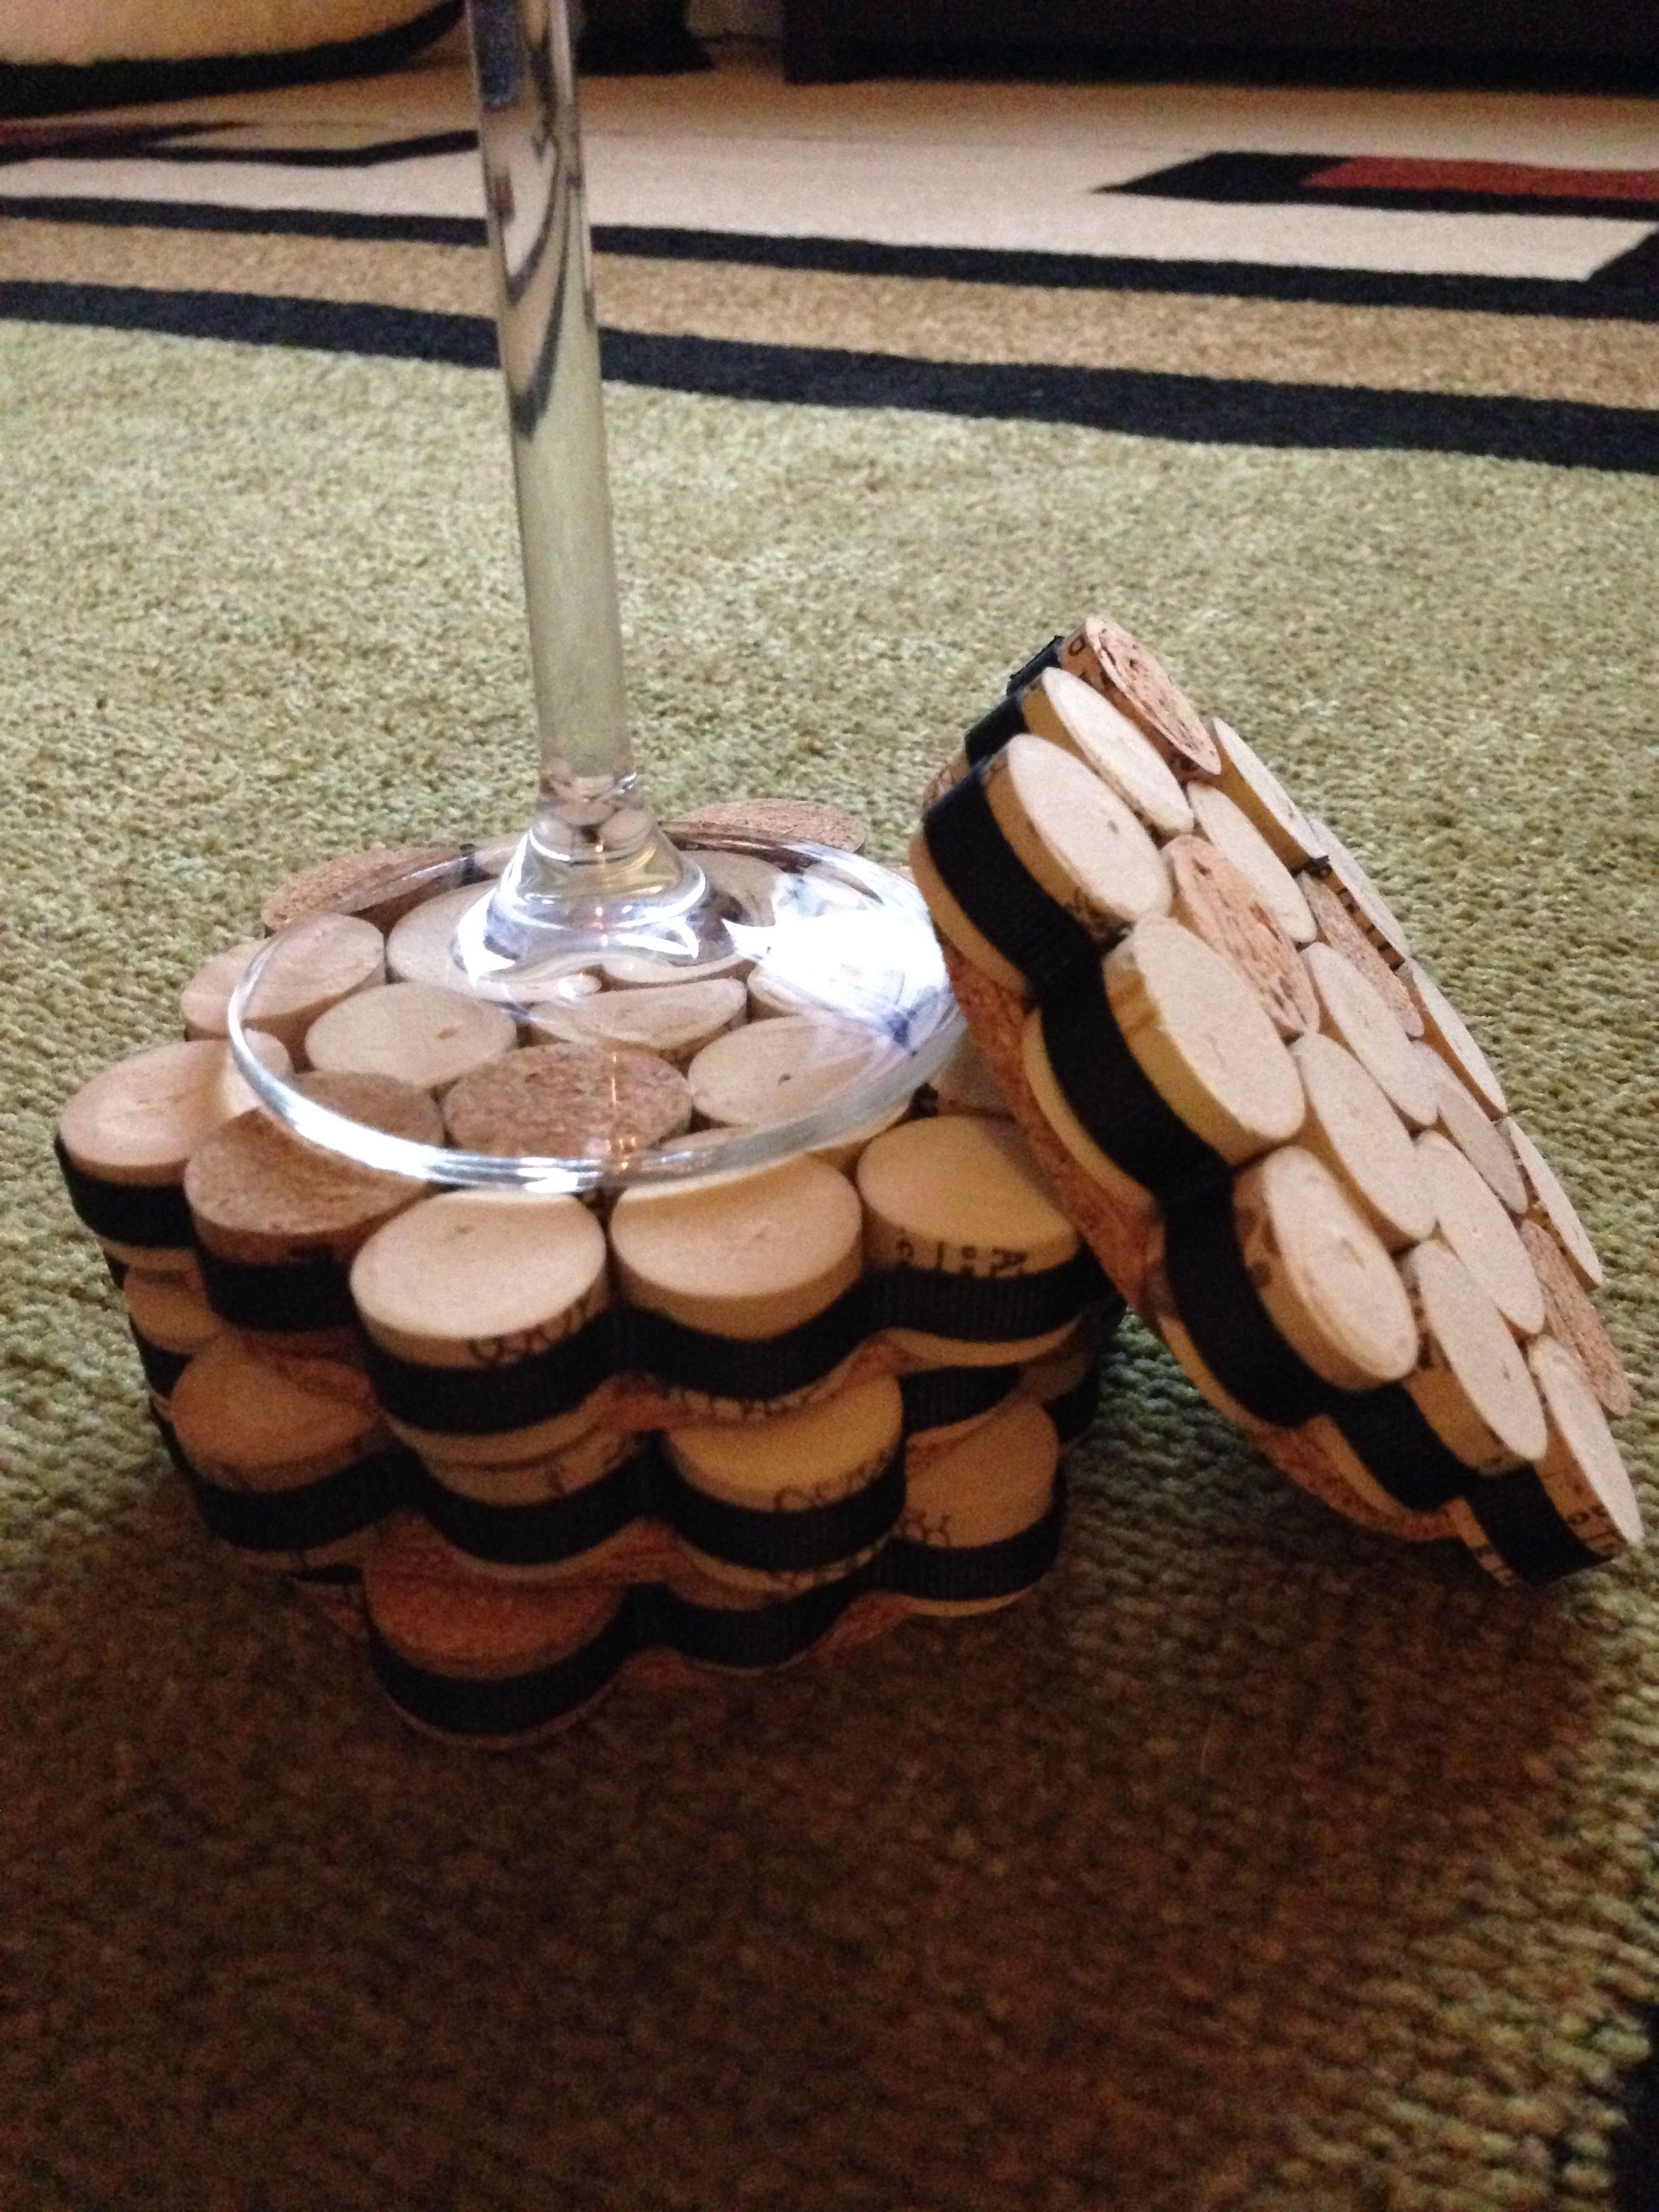 My DIY wine cork coasters.  Why buy them when you can make them yourself?  All you need is wine corks (about 26, but count in a few extras for mess ups), cut evenly into thirds, flat cork rounds, tacky glue, ribbon, and plenty of patience.